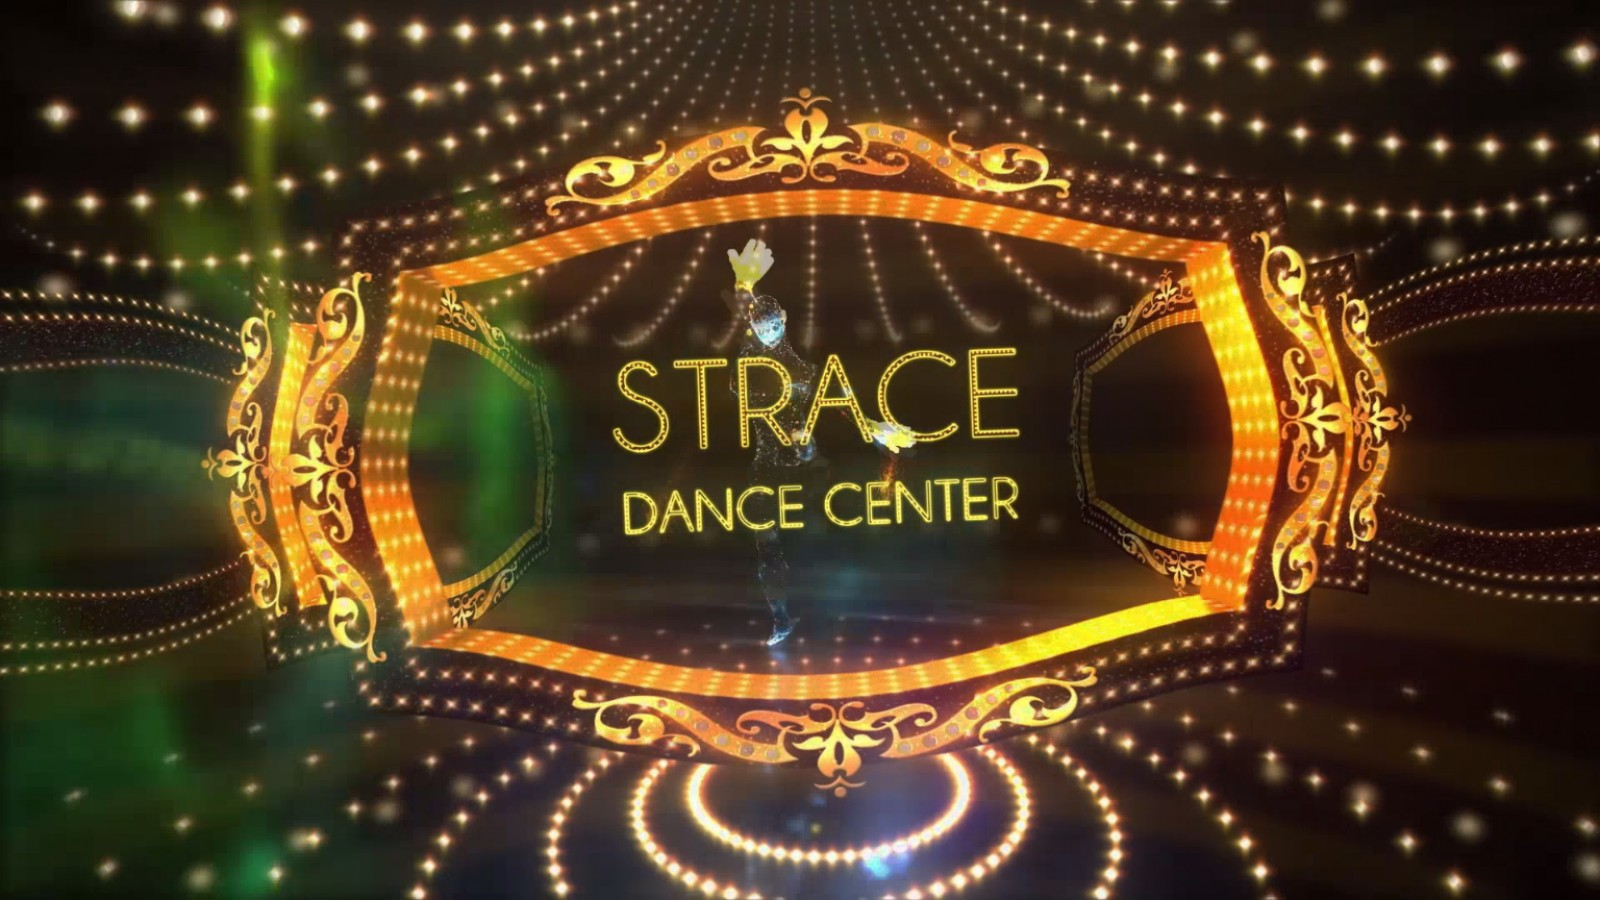 Strace Dance Center